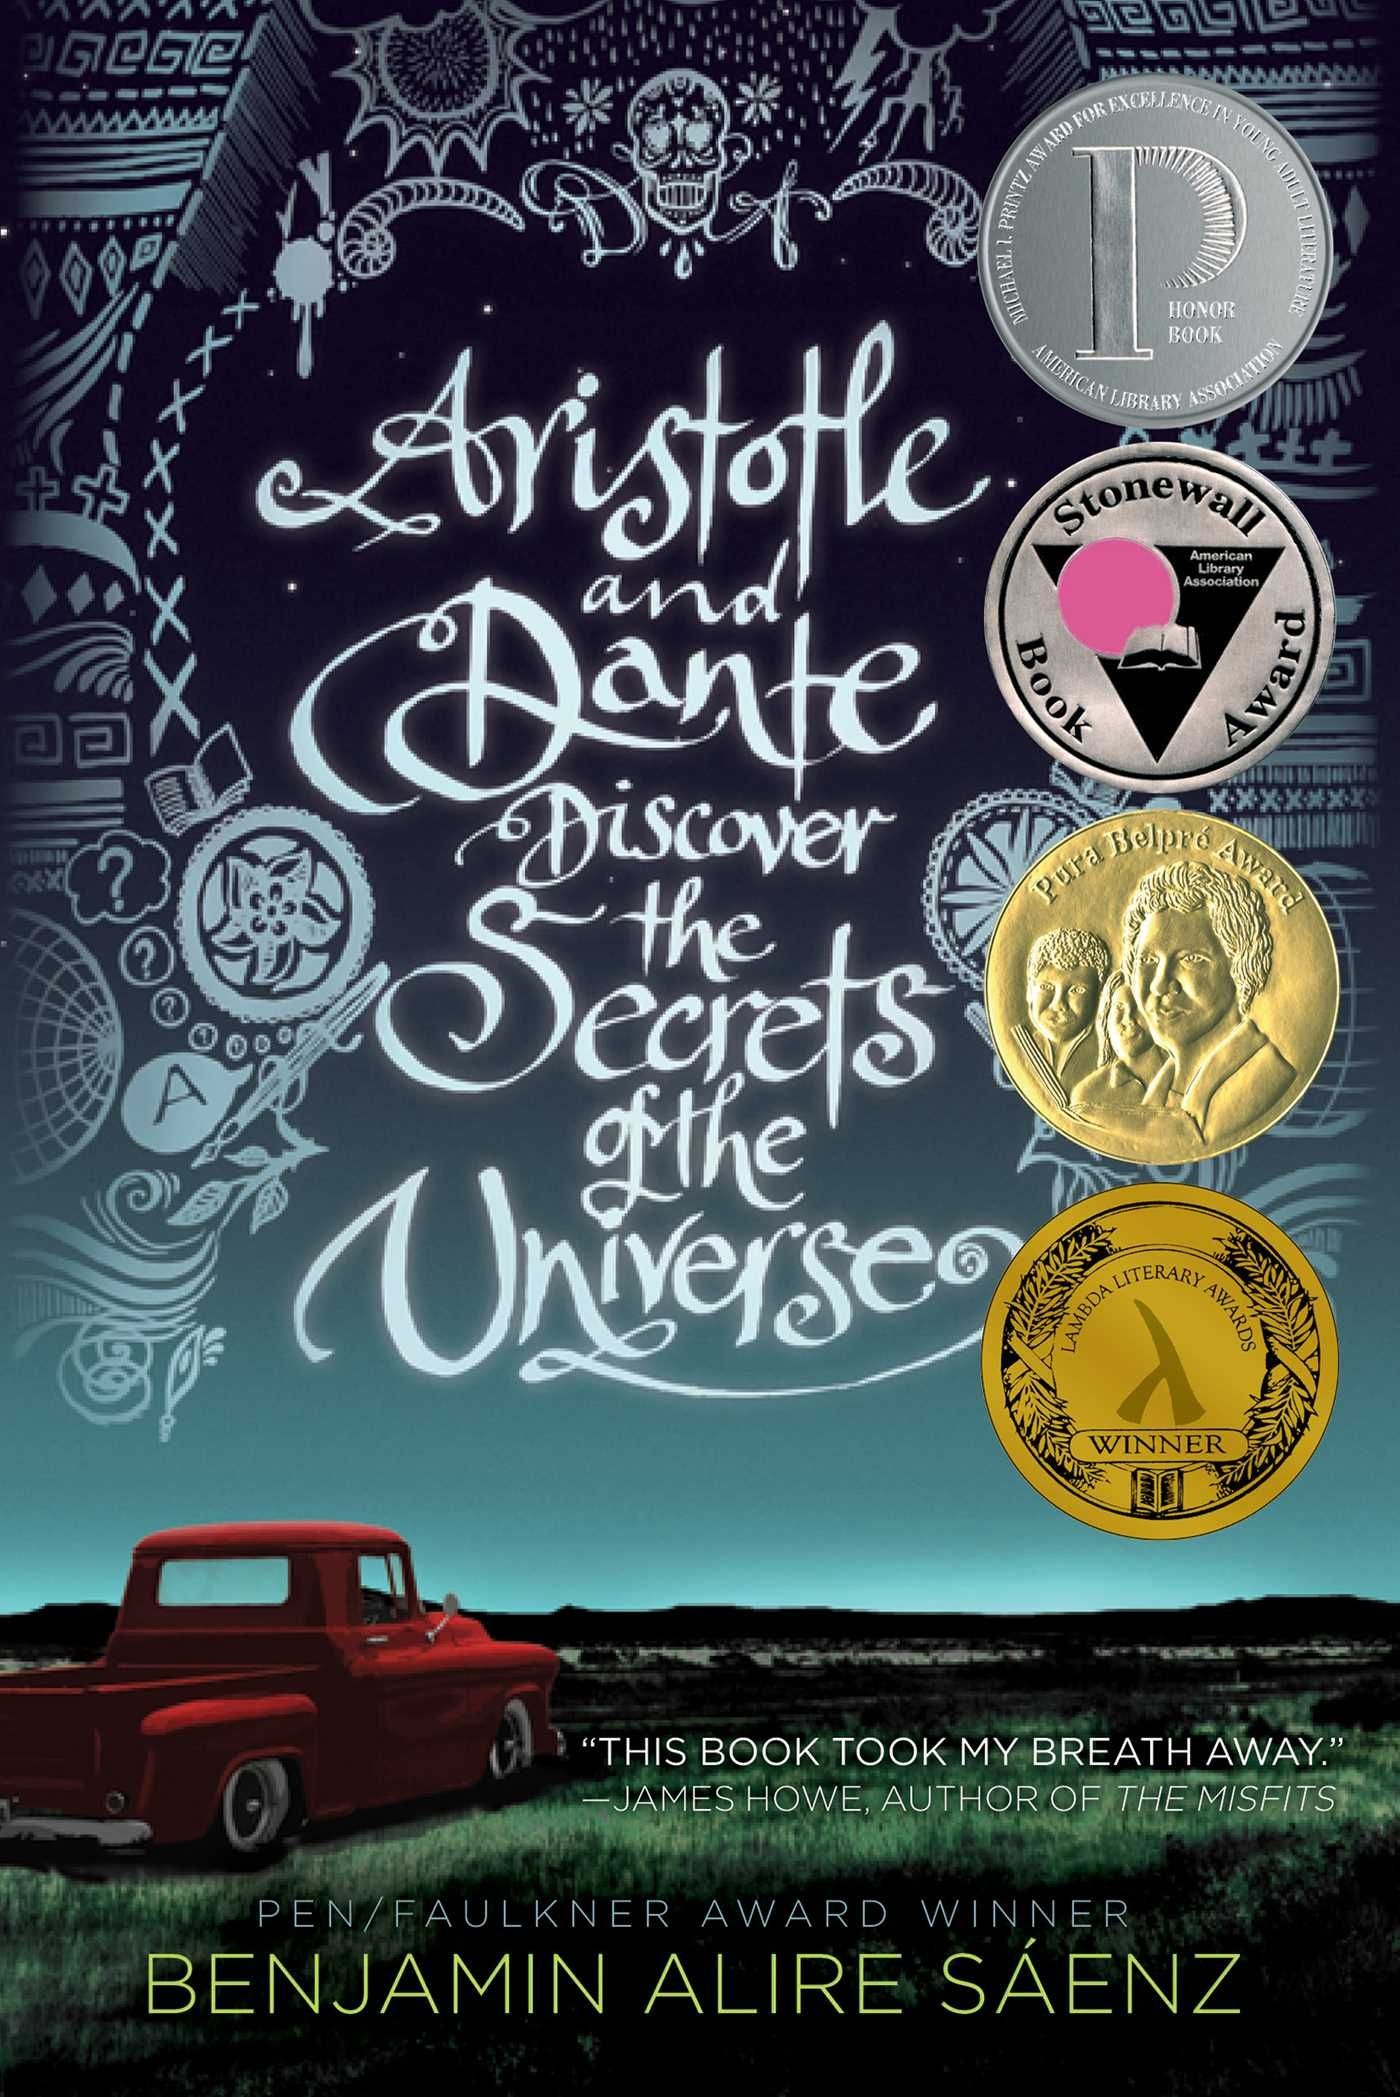 aristotle-and-dante-discover-the-secrets-of-the-universe.jpg